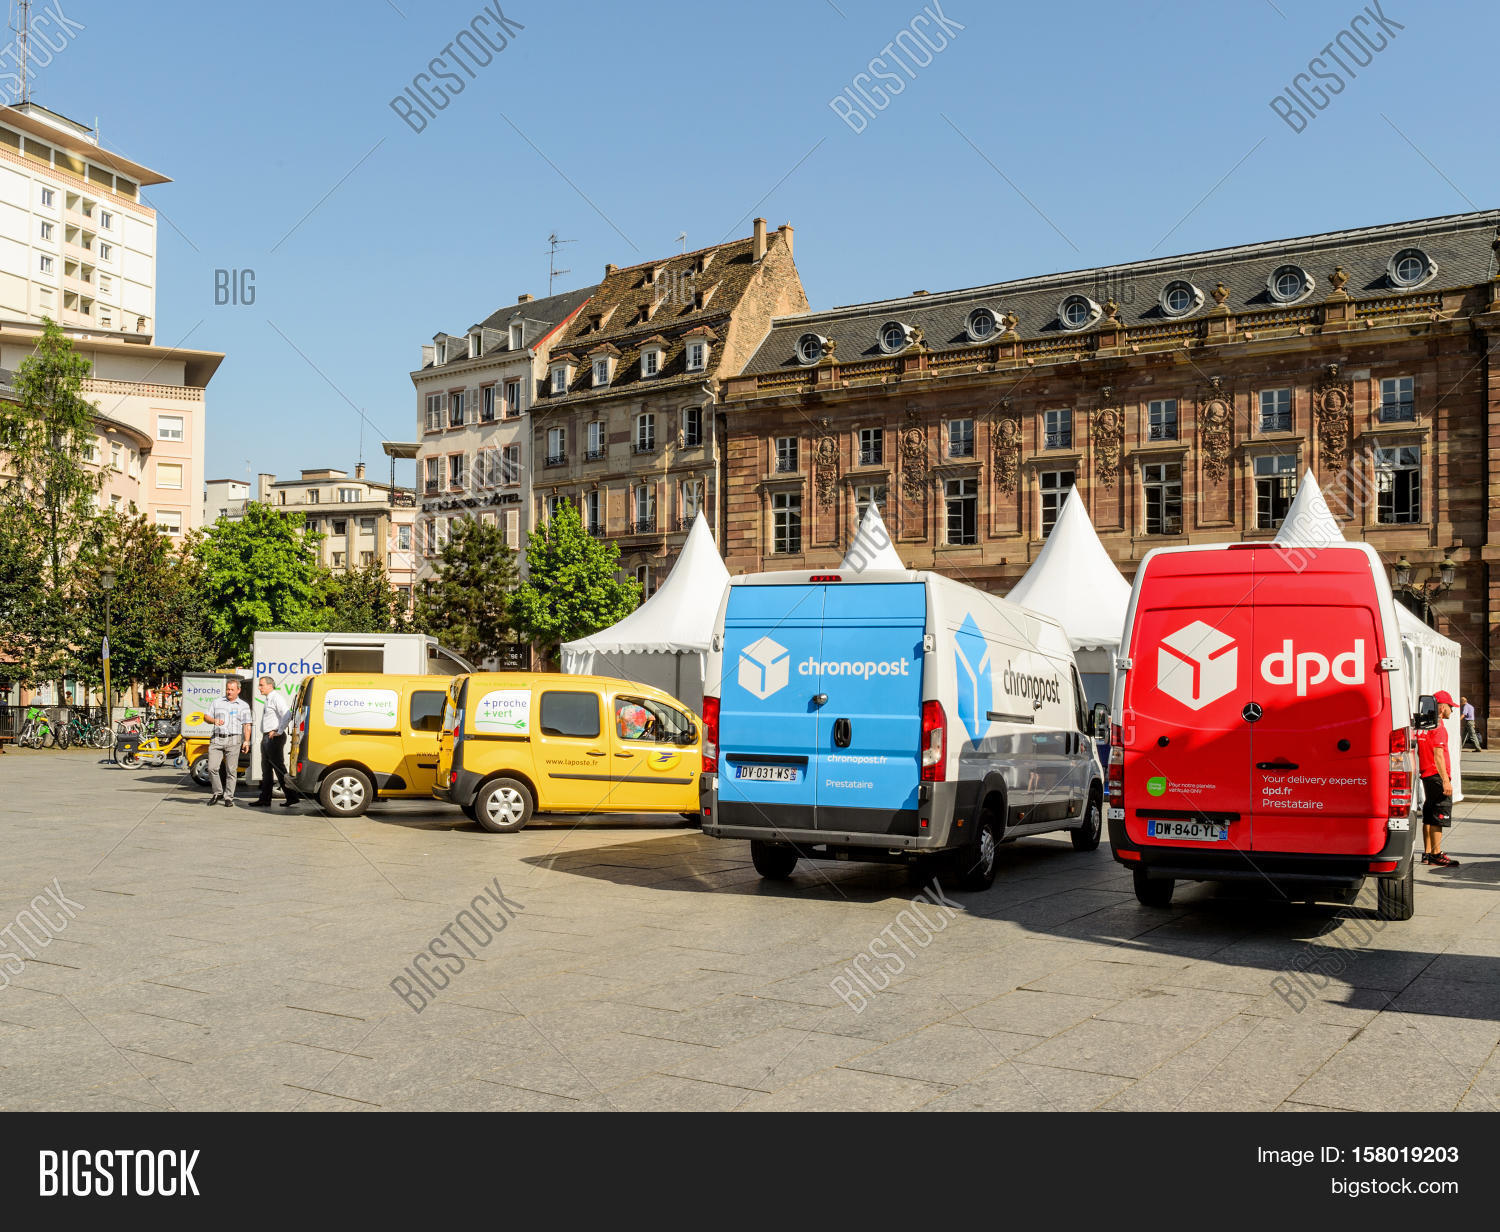 a5b0ebdbc5 STRASBOURG FRANCE - CIRCA 2016  CHRONOPOST DPD and La Poste delivery vans  in center of